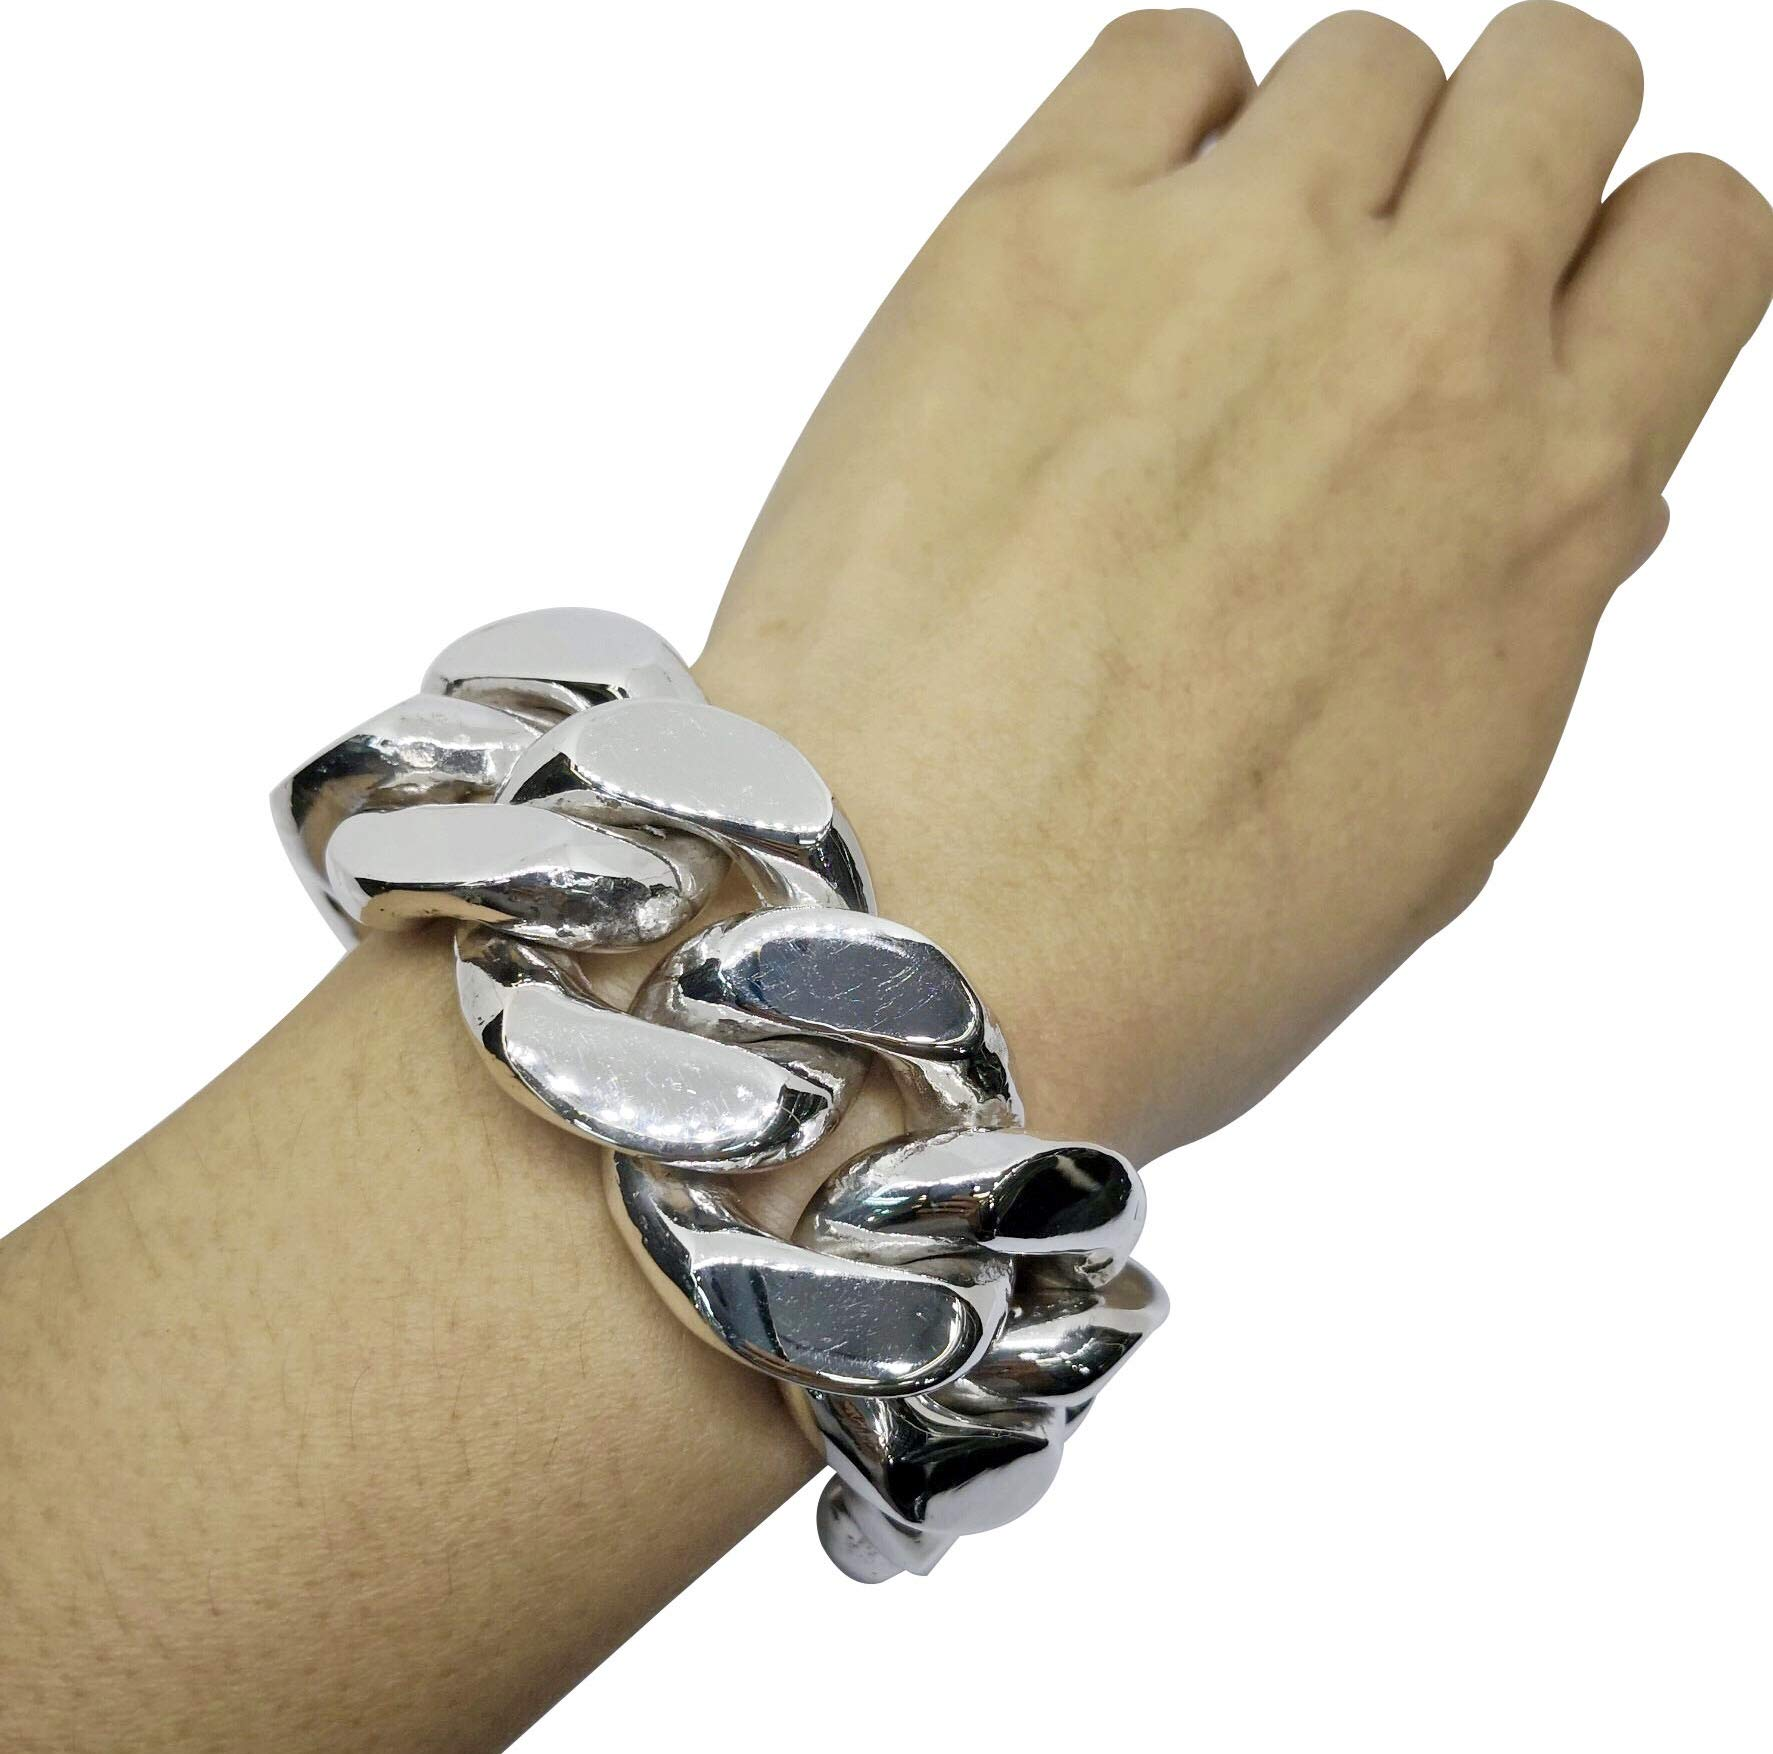 joy-nin 925 Solid Sterling Silver Super Big 30mm Approx 500 Grams Chain Link Men Bracelet with Cleaning Silver Cloth and Velvet Box (8.5)